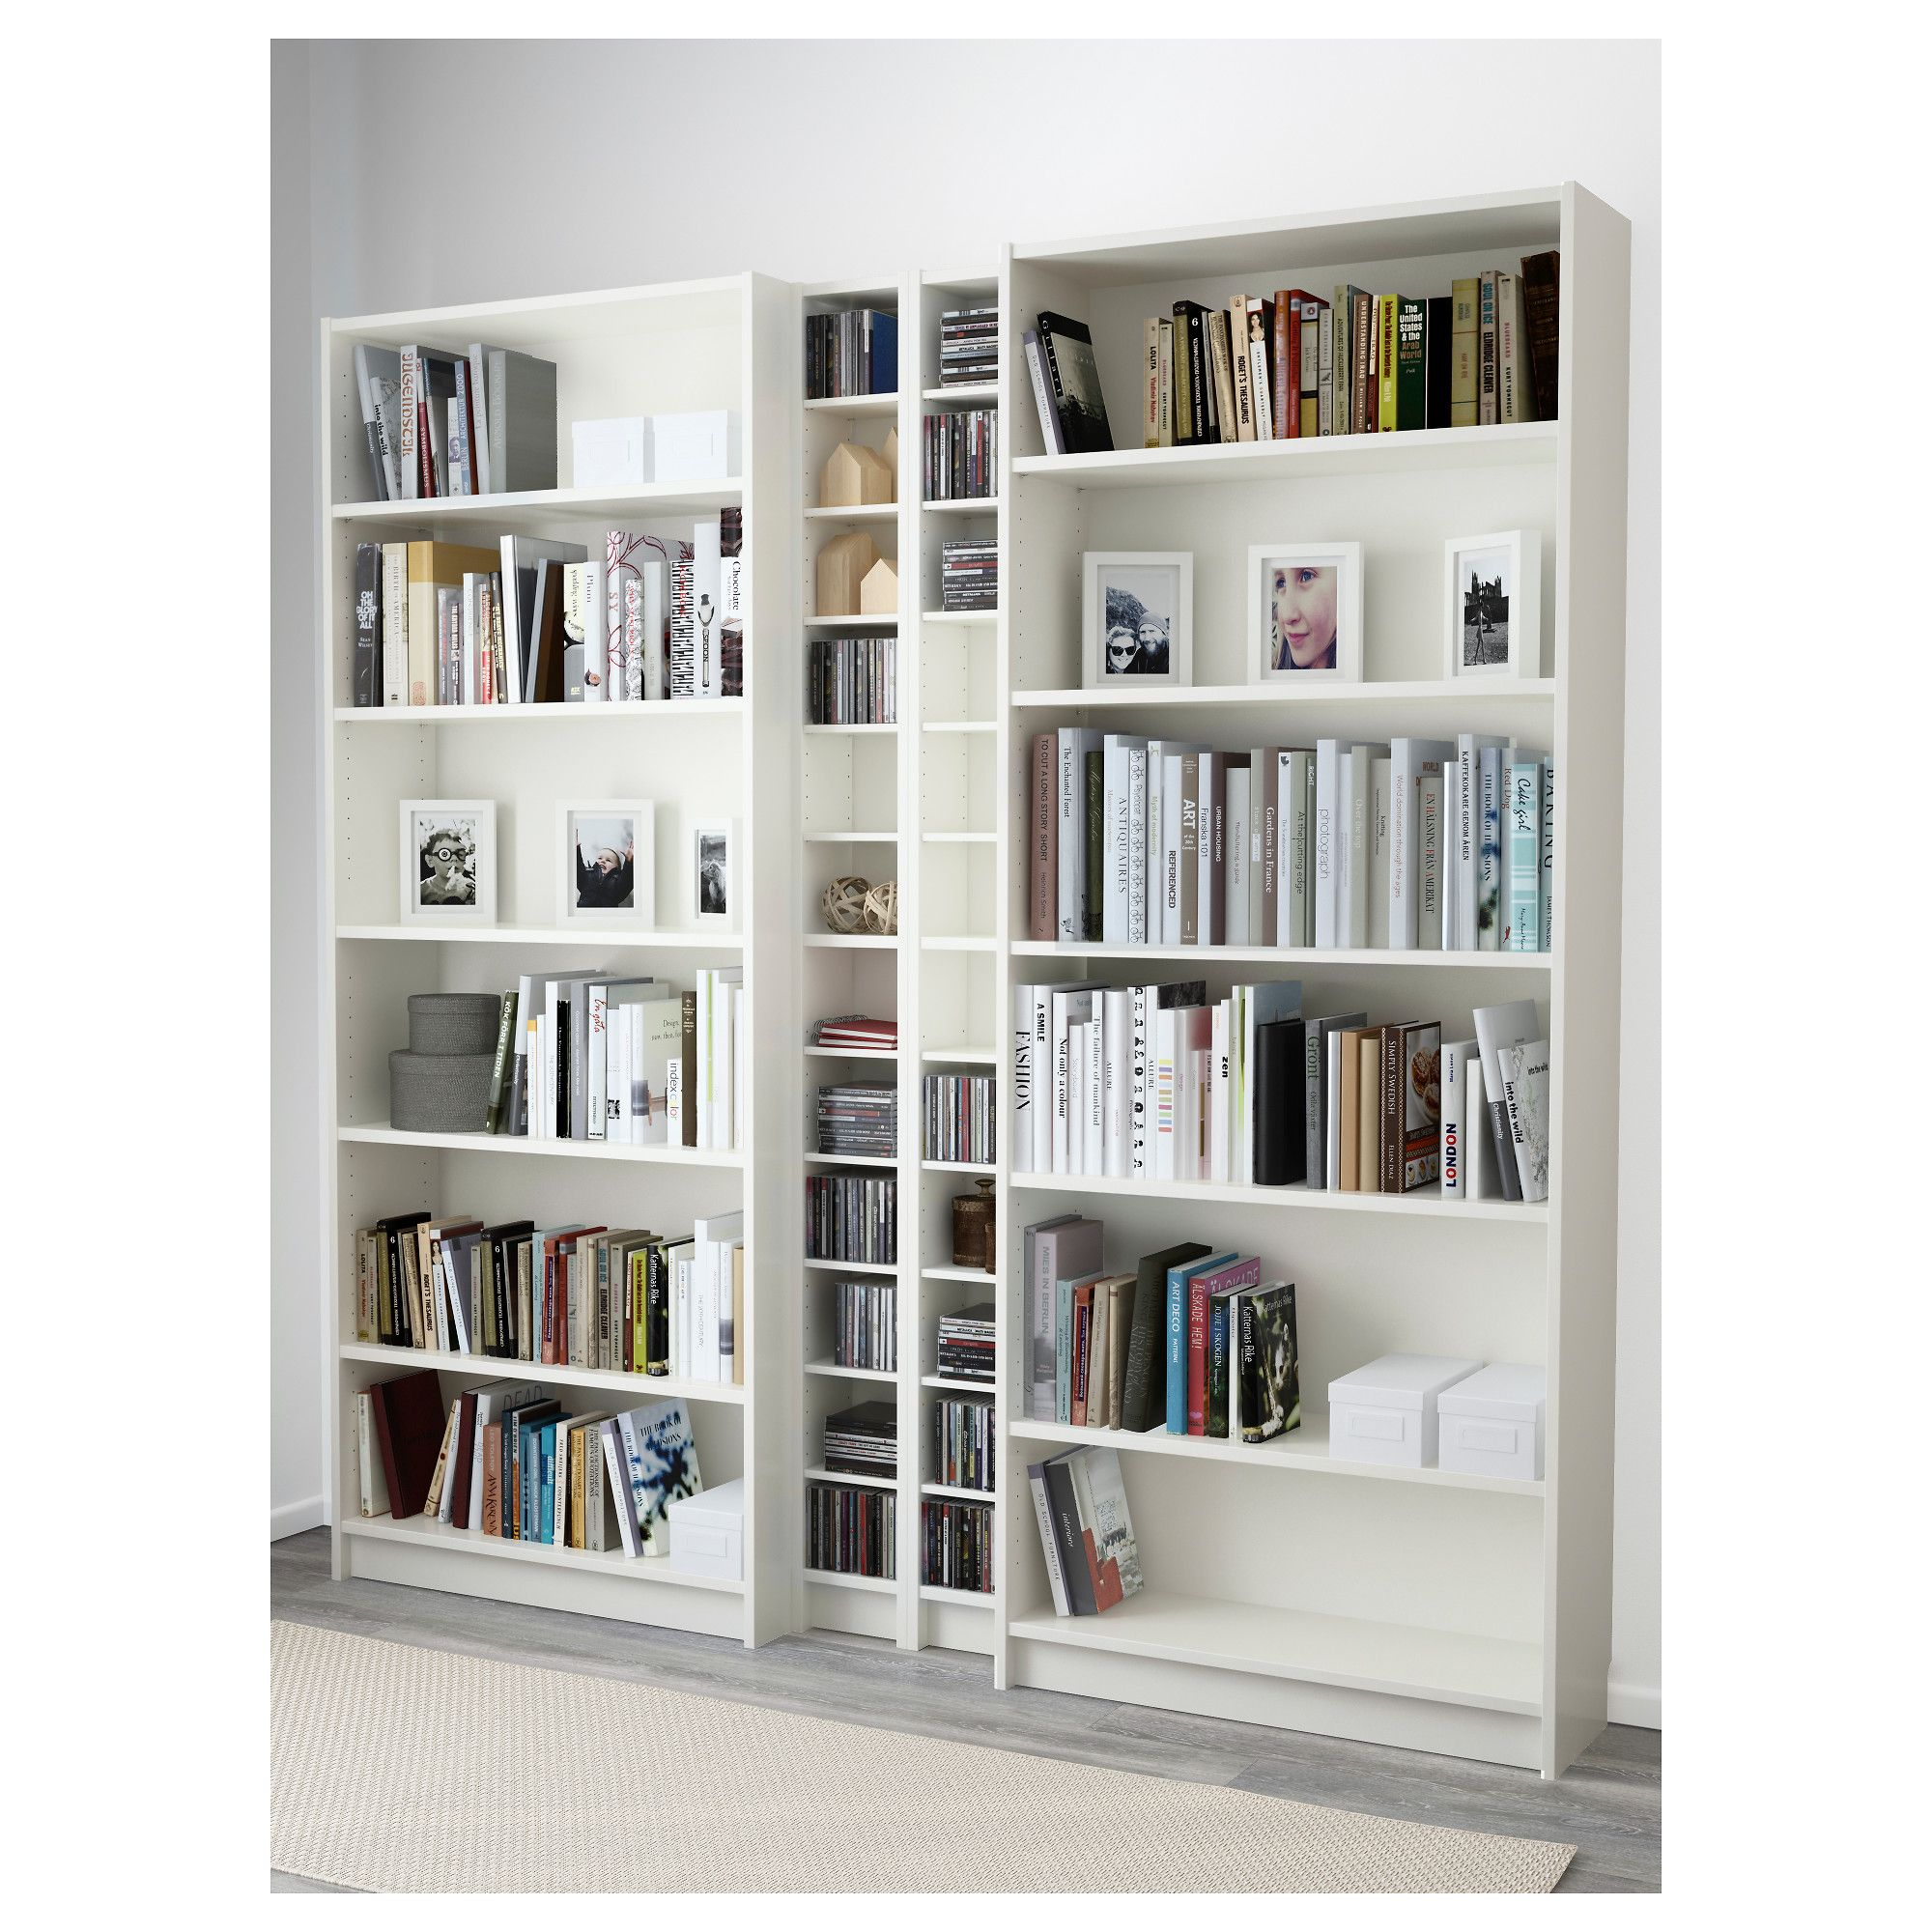 Gnedby Regal Billy Gnedby Bookcase White In 2019 Crafty Space Estantería